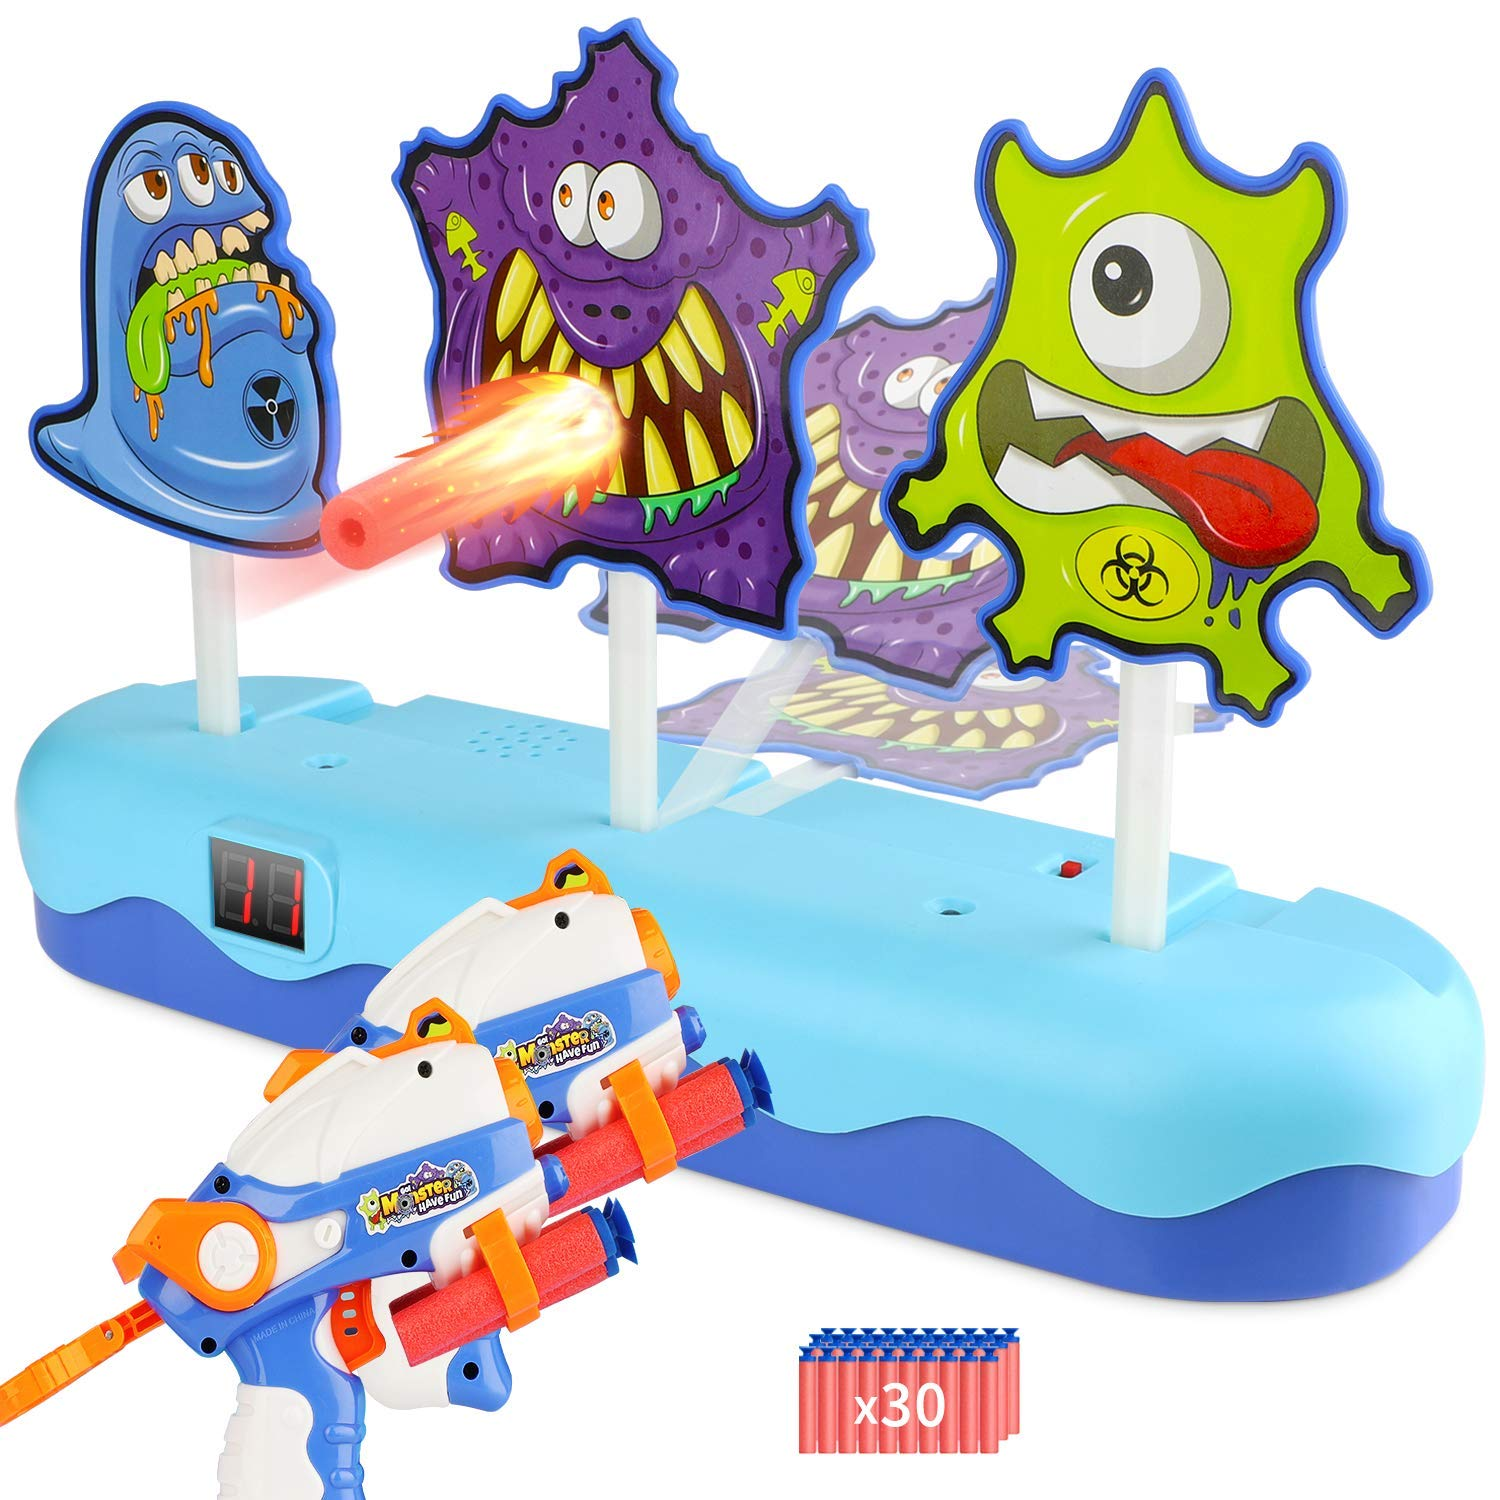 EKOOS Shooting Game Toy Gun Set for Kids Monster Shooting Target Electronic Scoring Auto Reset Digital Targets, Ideal Gift for Kids Boys & Girls Aged 3 - Compatible with Nerf Guns